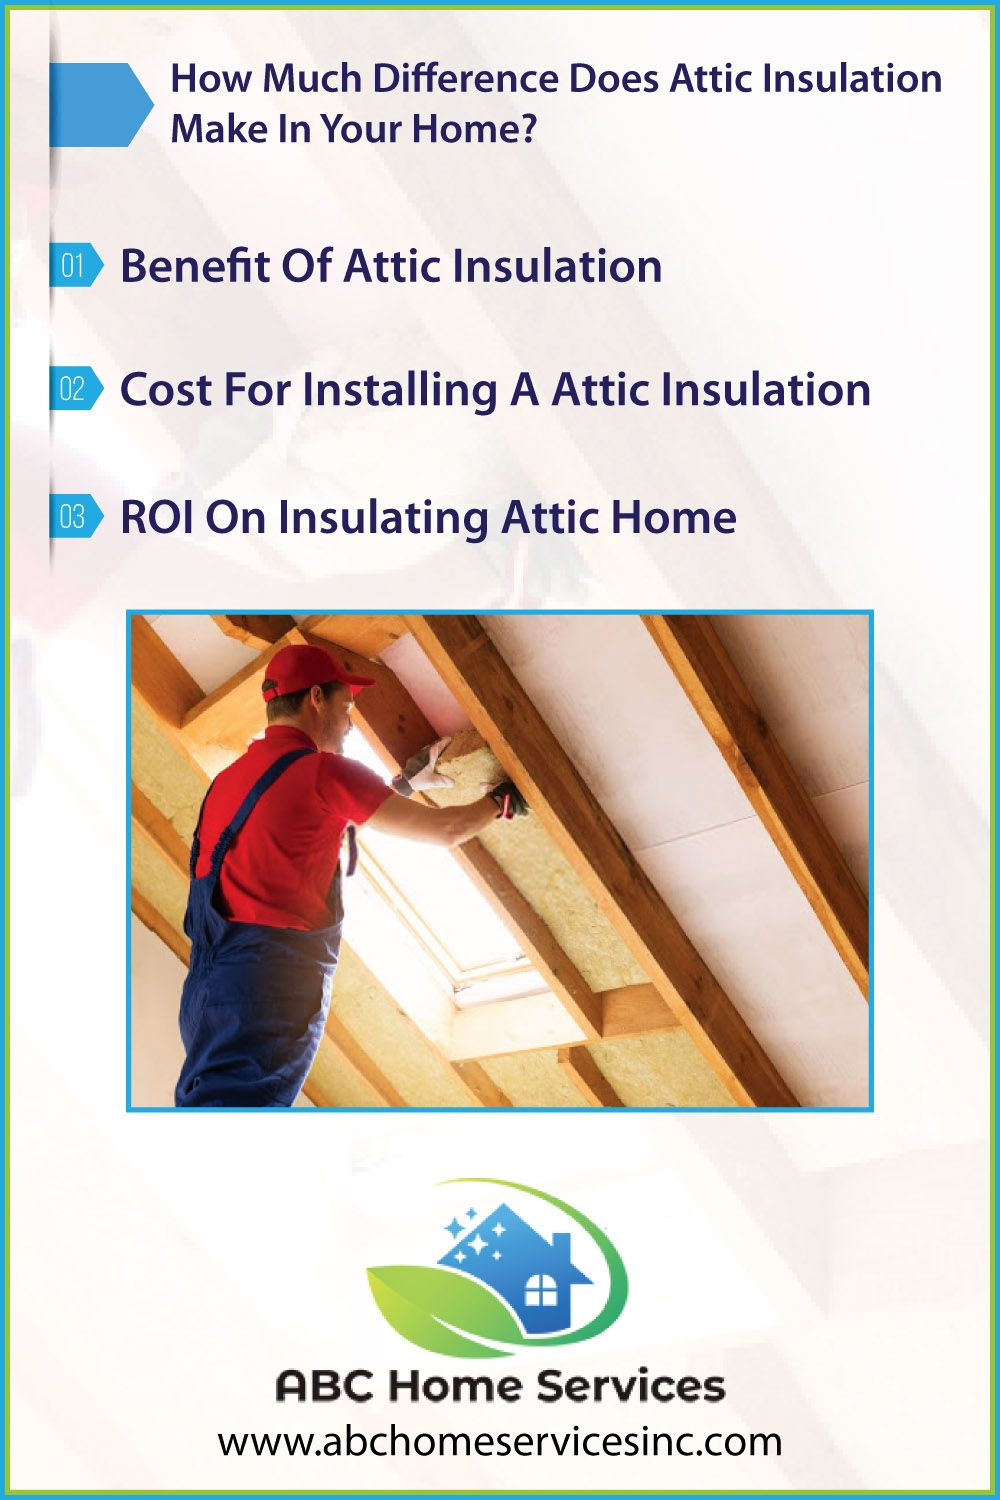 How Much Difference Does Attic Insulation Make In Your Home In 2020 Attic Insulation Insulation Attic